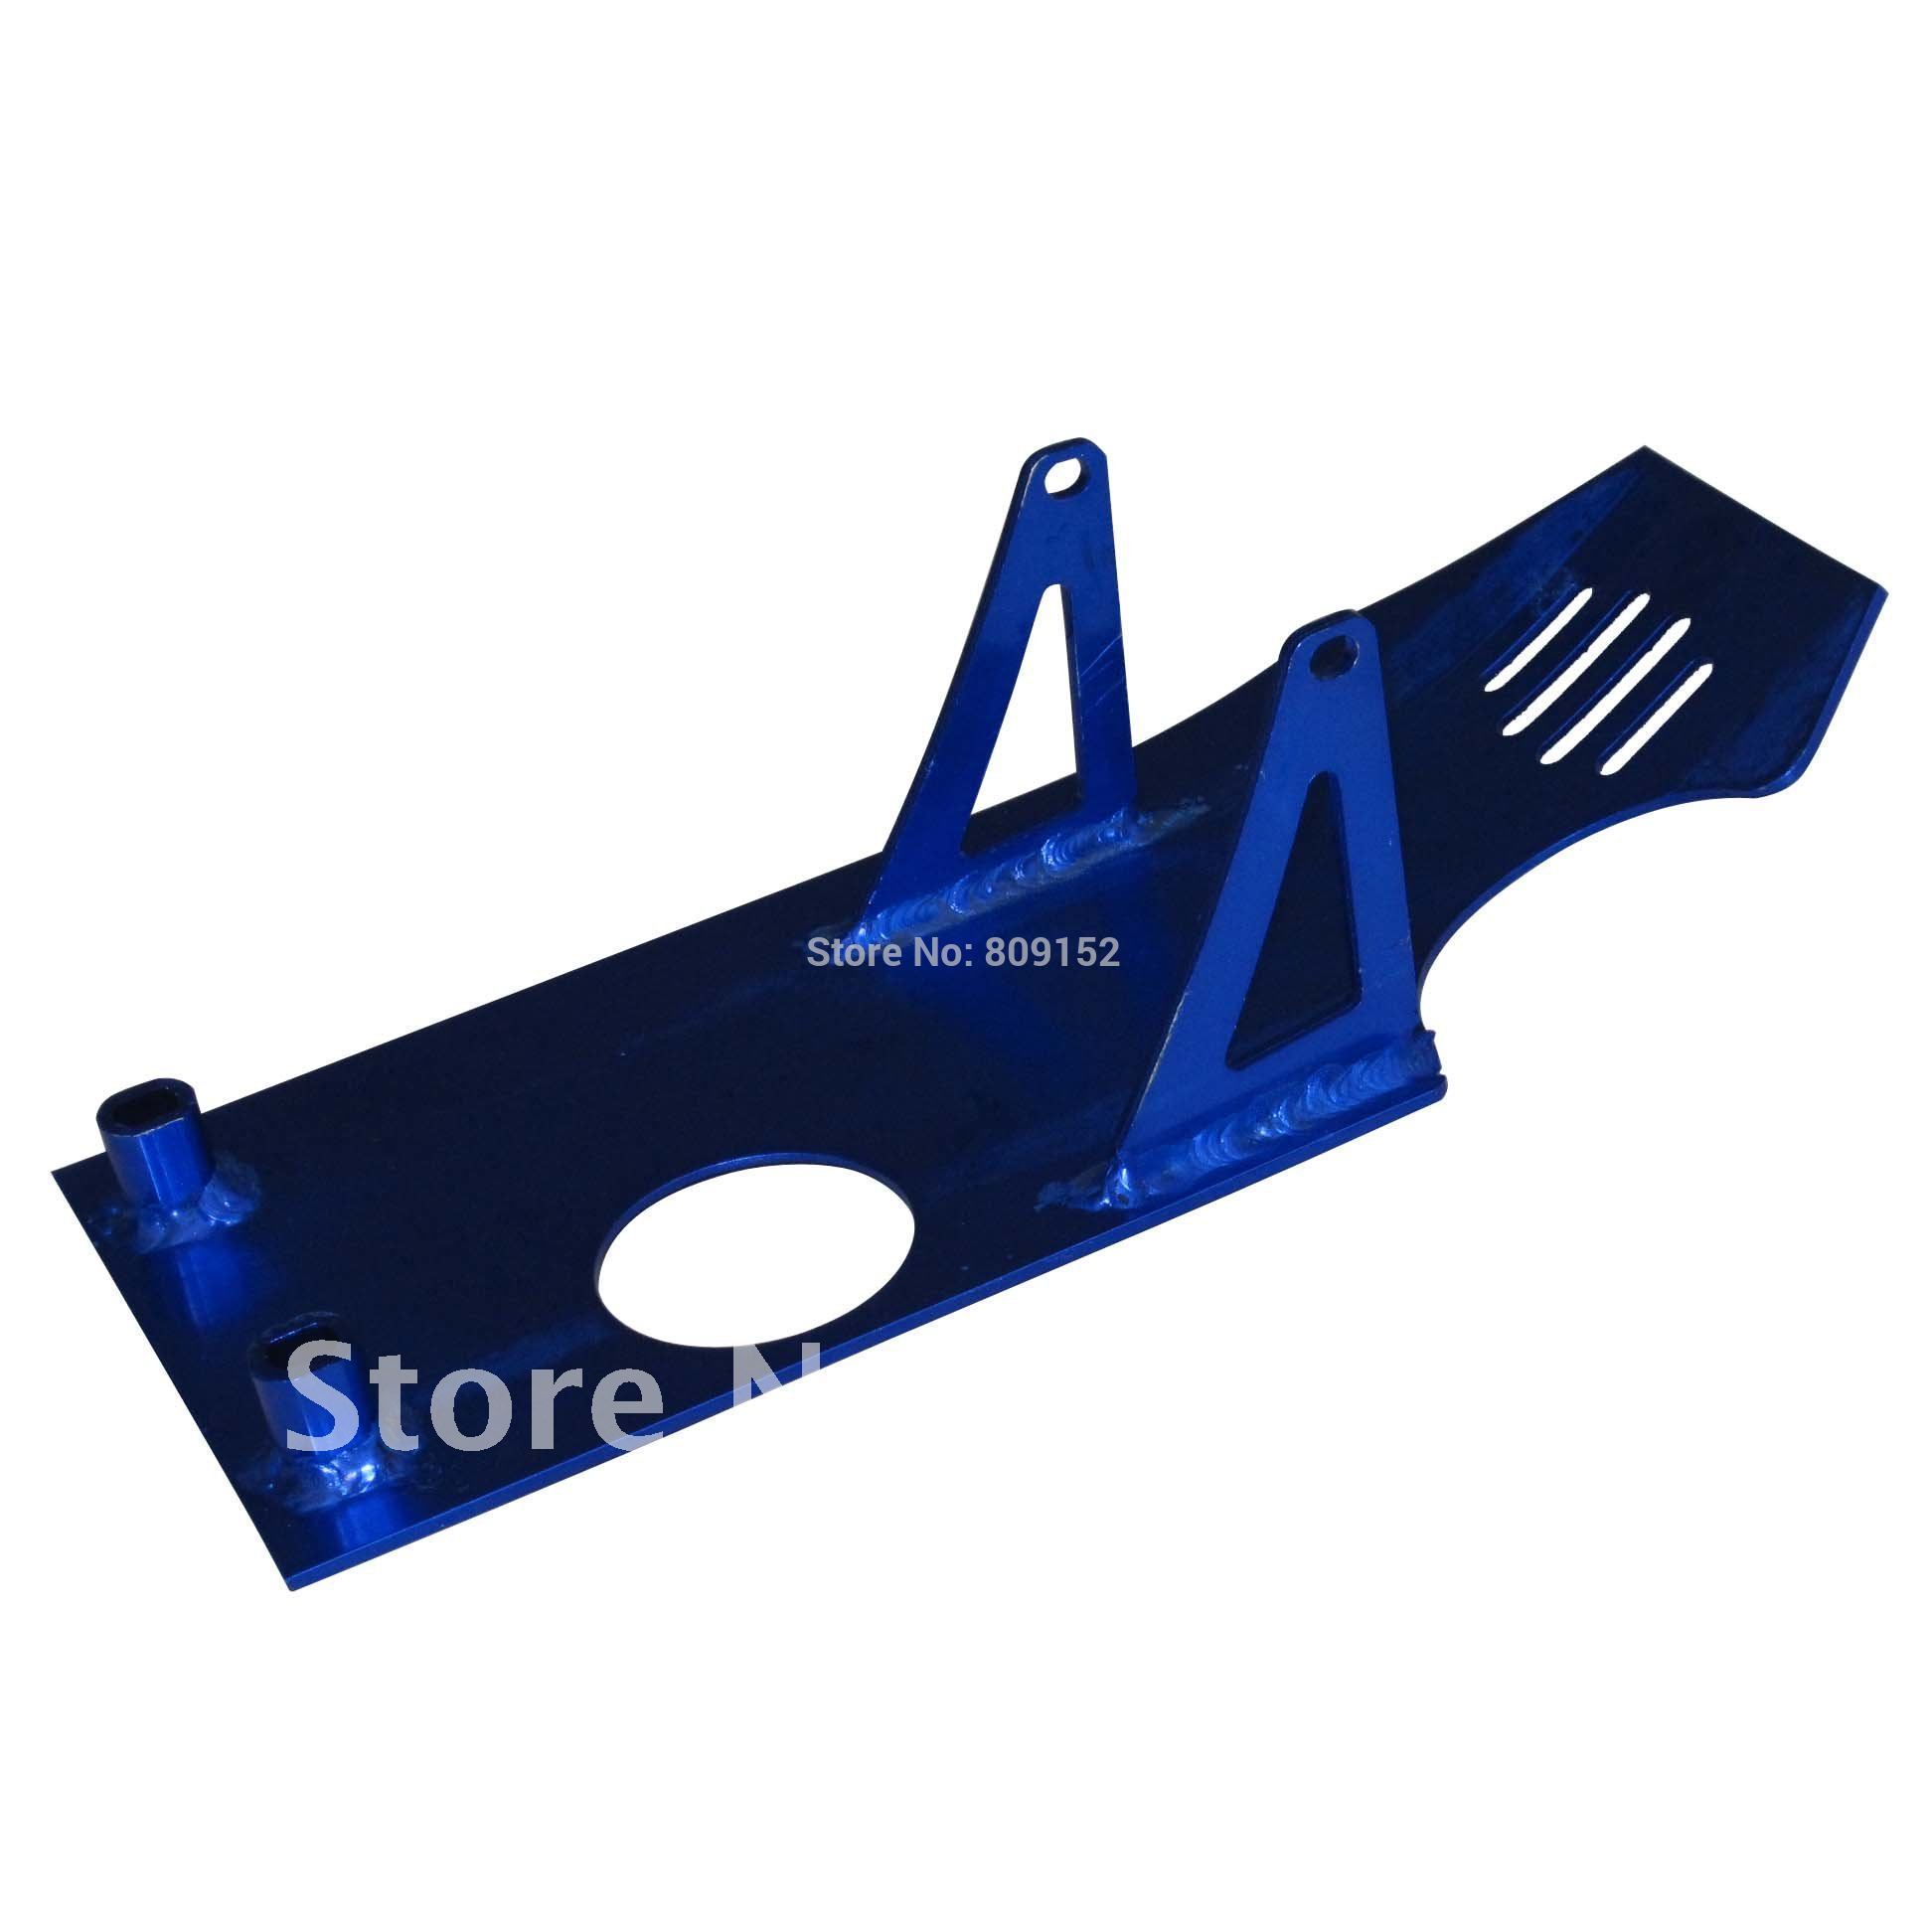 Engine Guard Protect Plate New Colour Heavy Duty Alloy Bash Plate Aluminum Skidplat Pit Bikea Atomik Crf50 Crf70 Klx110 Parts